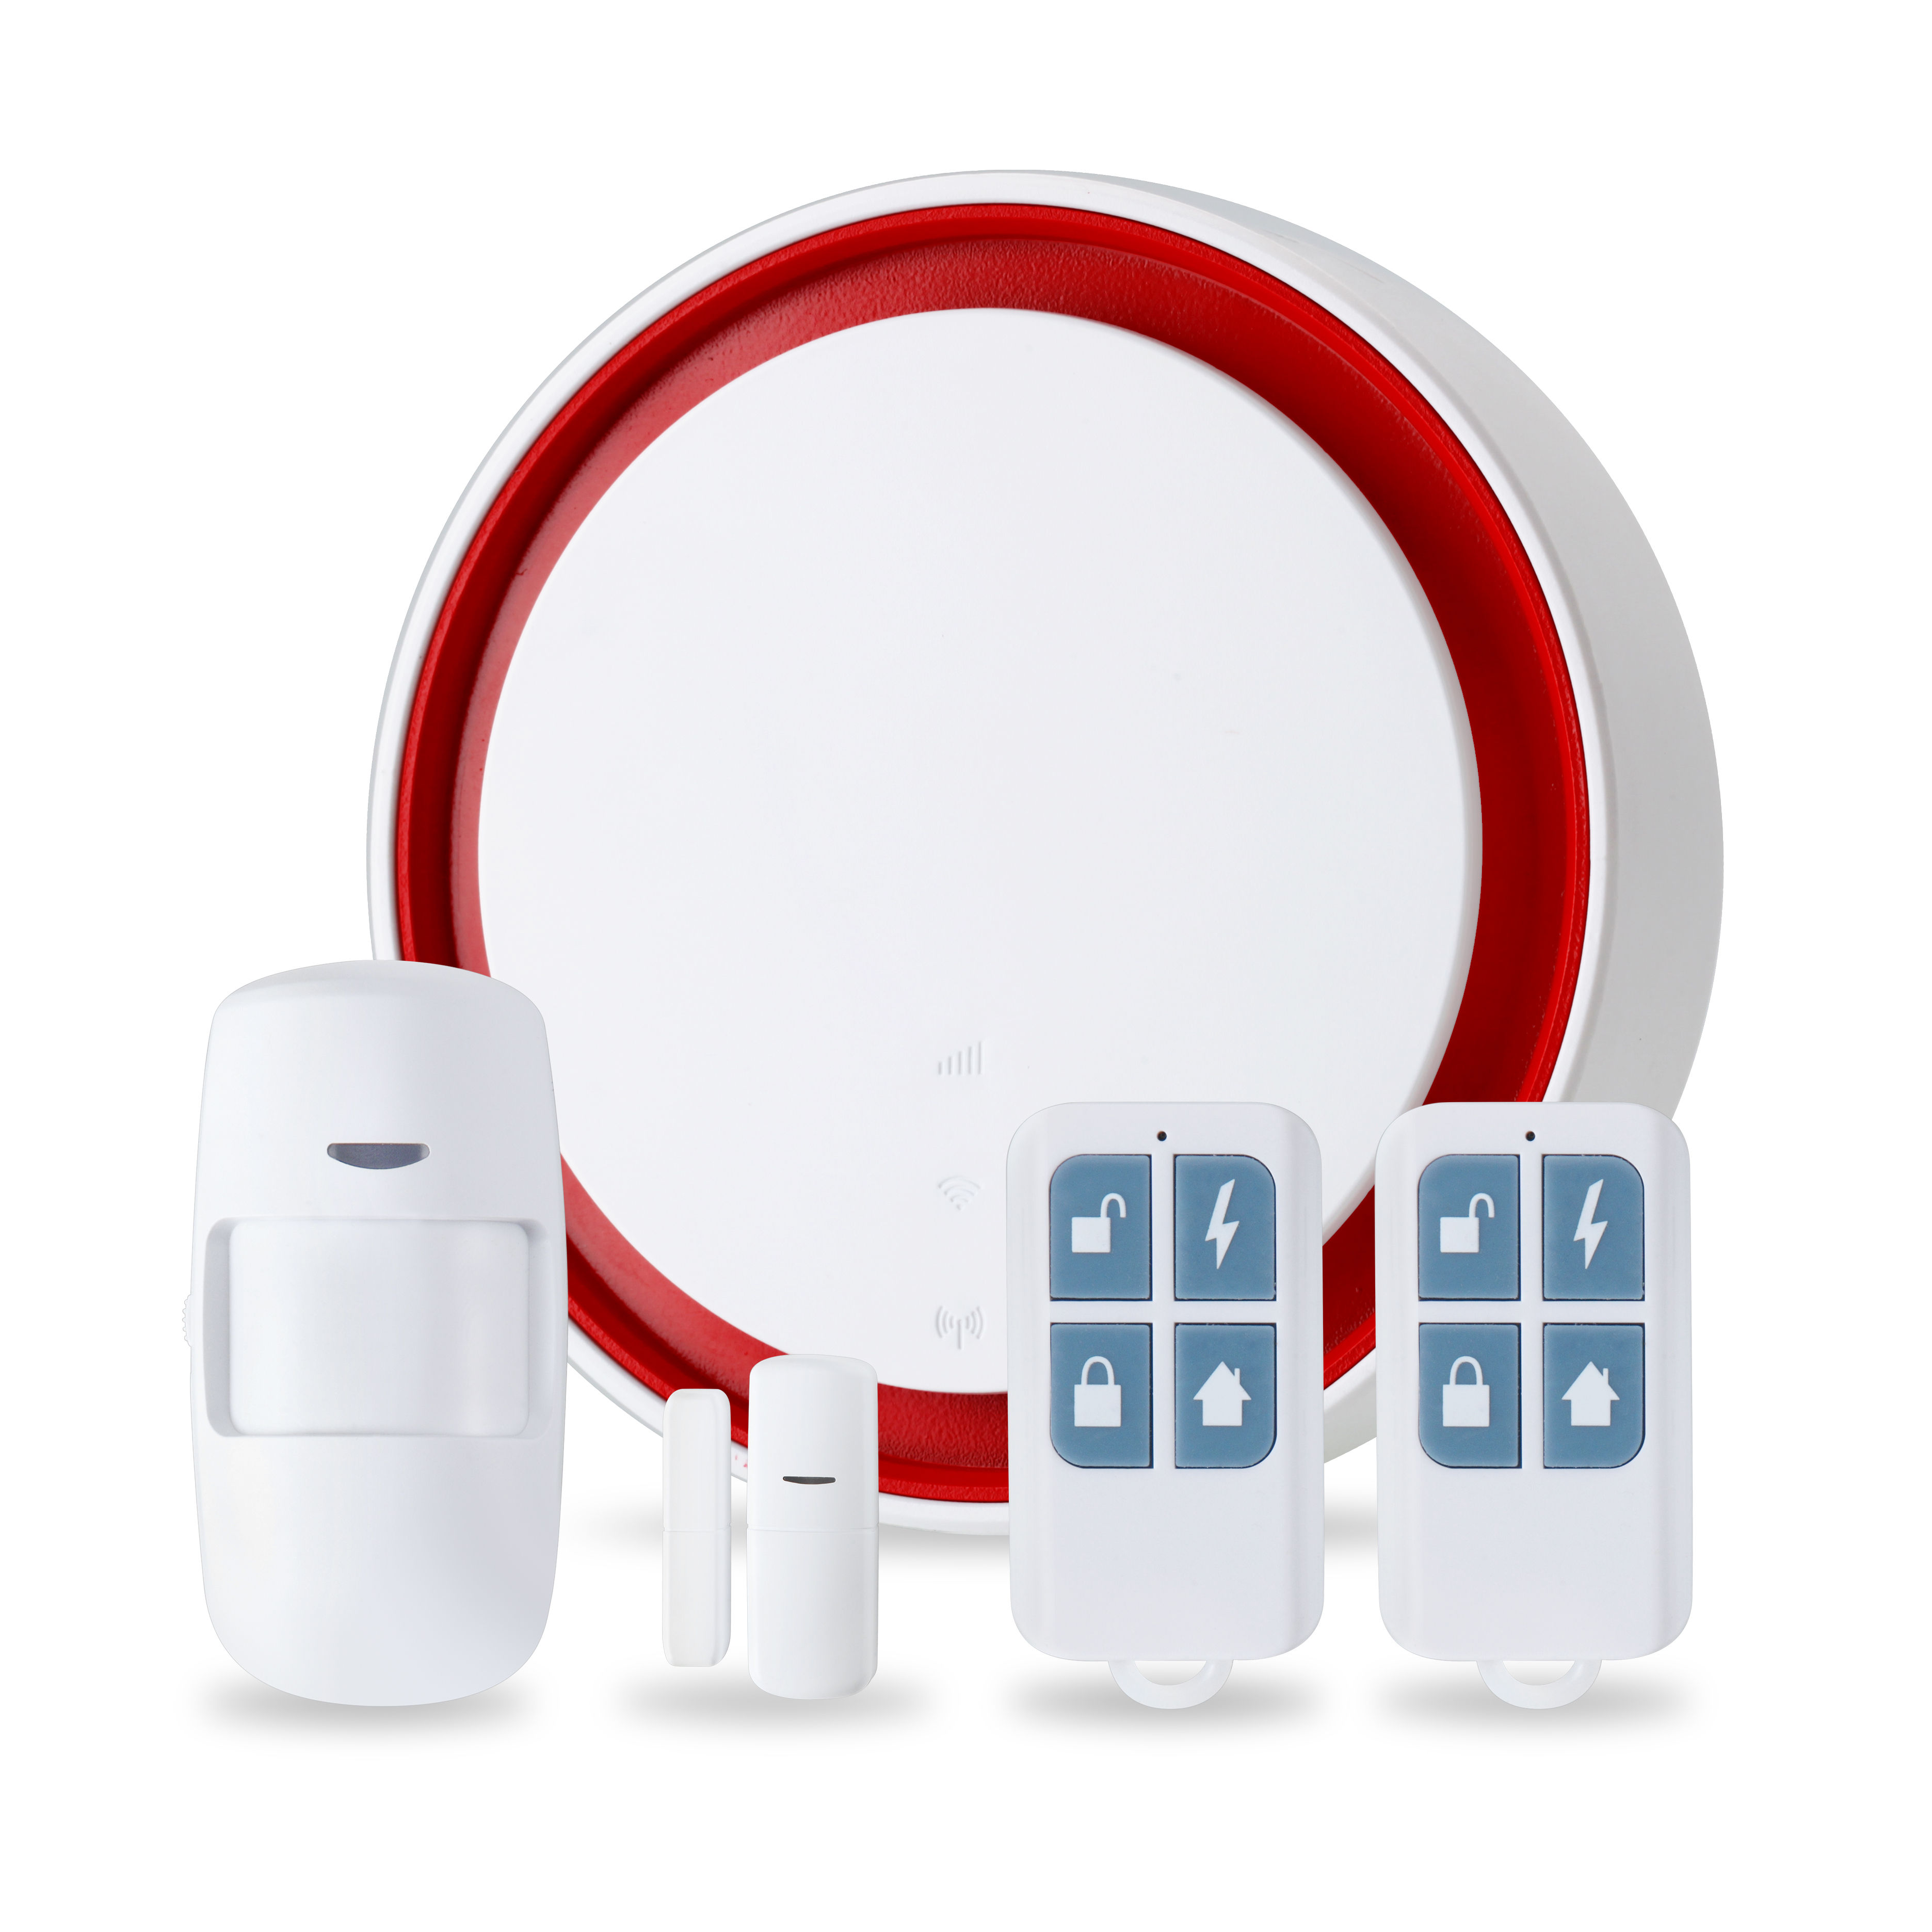 Easy installation personal TUYA wireless alarm support gsm and wifi for shop,home,company,